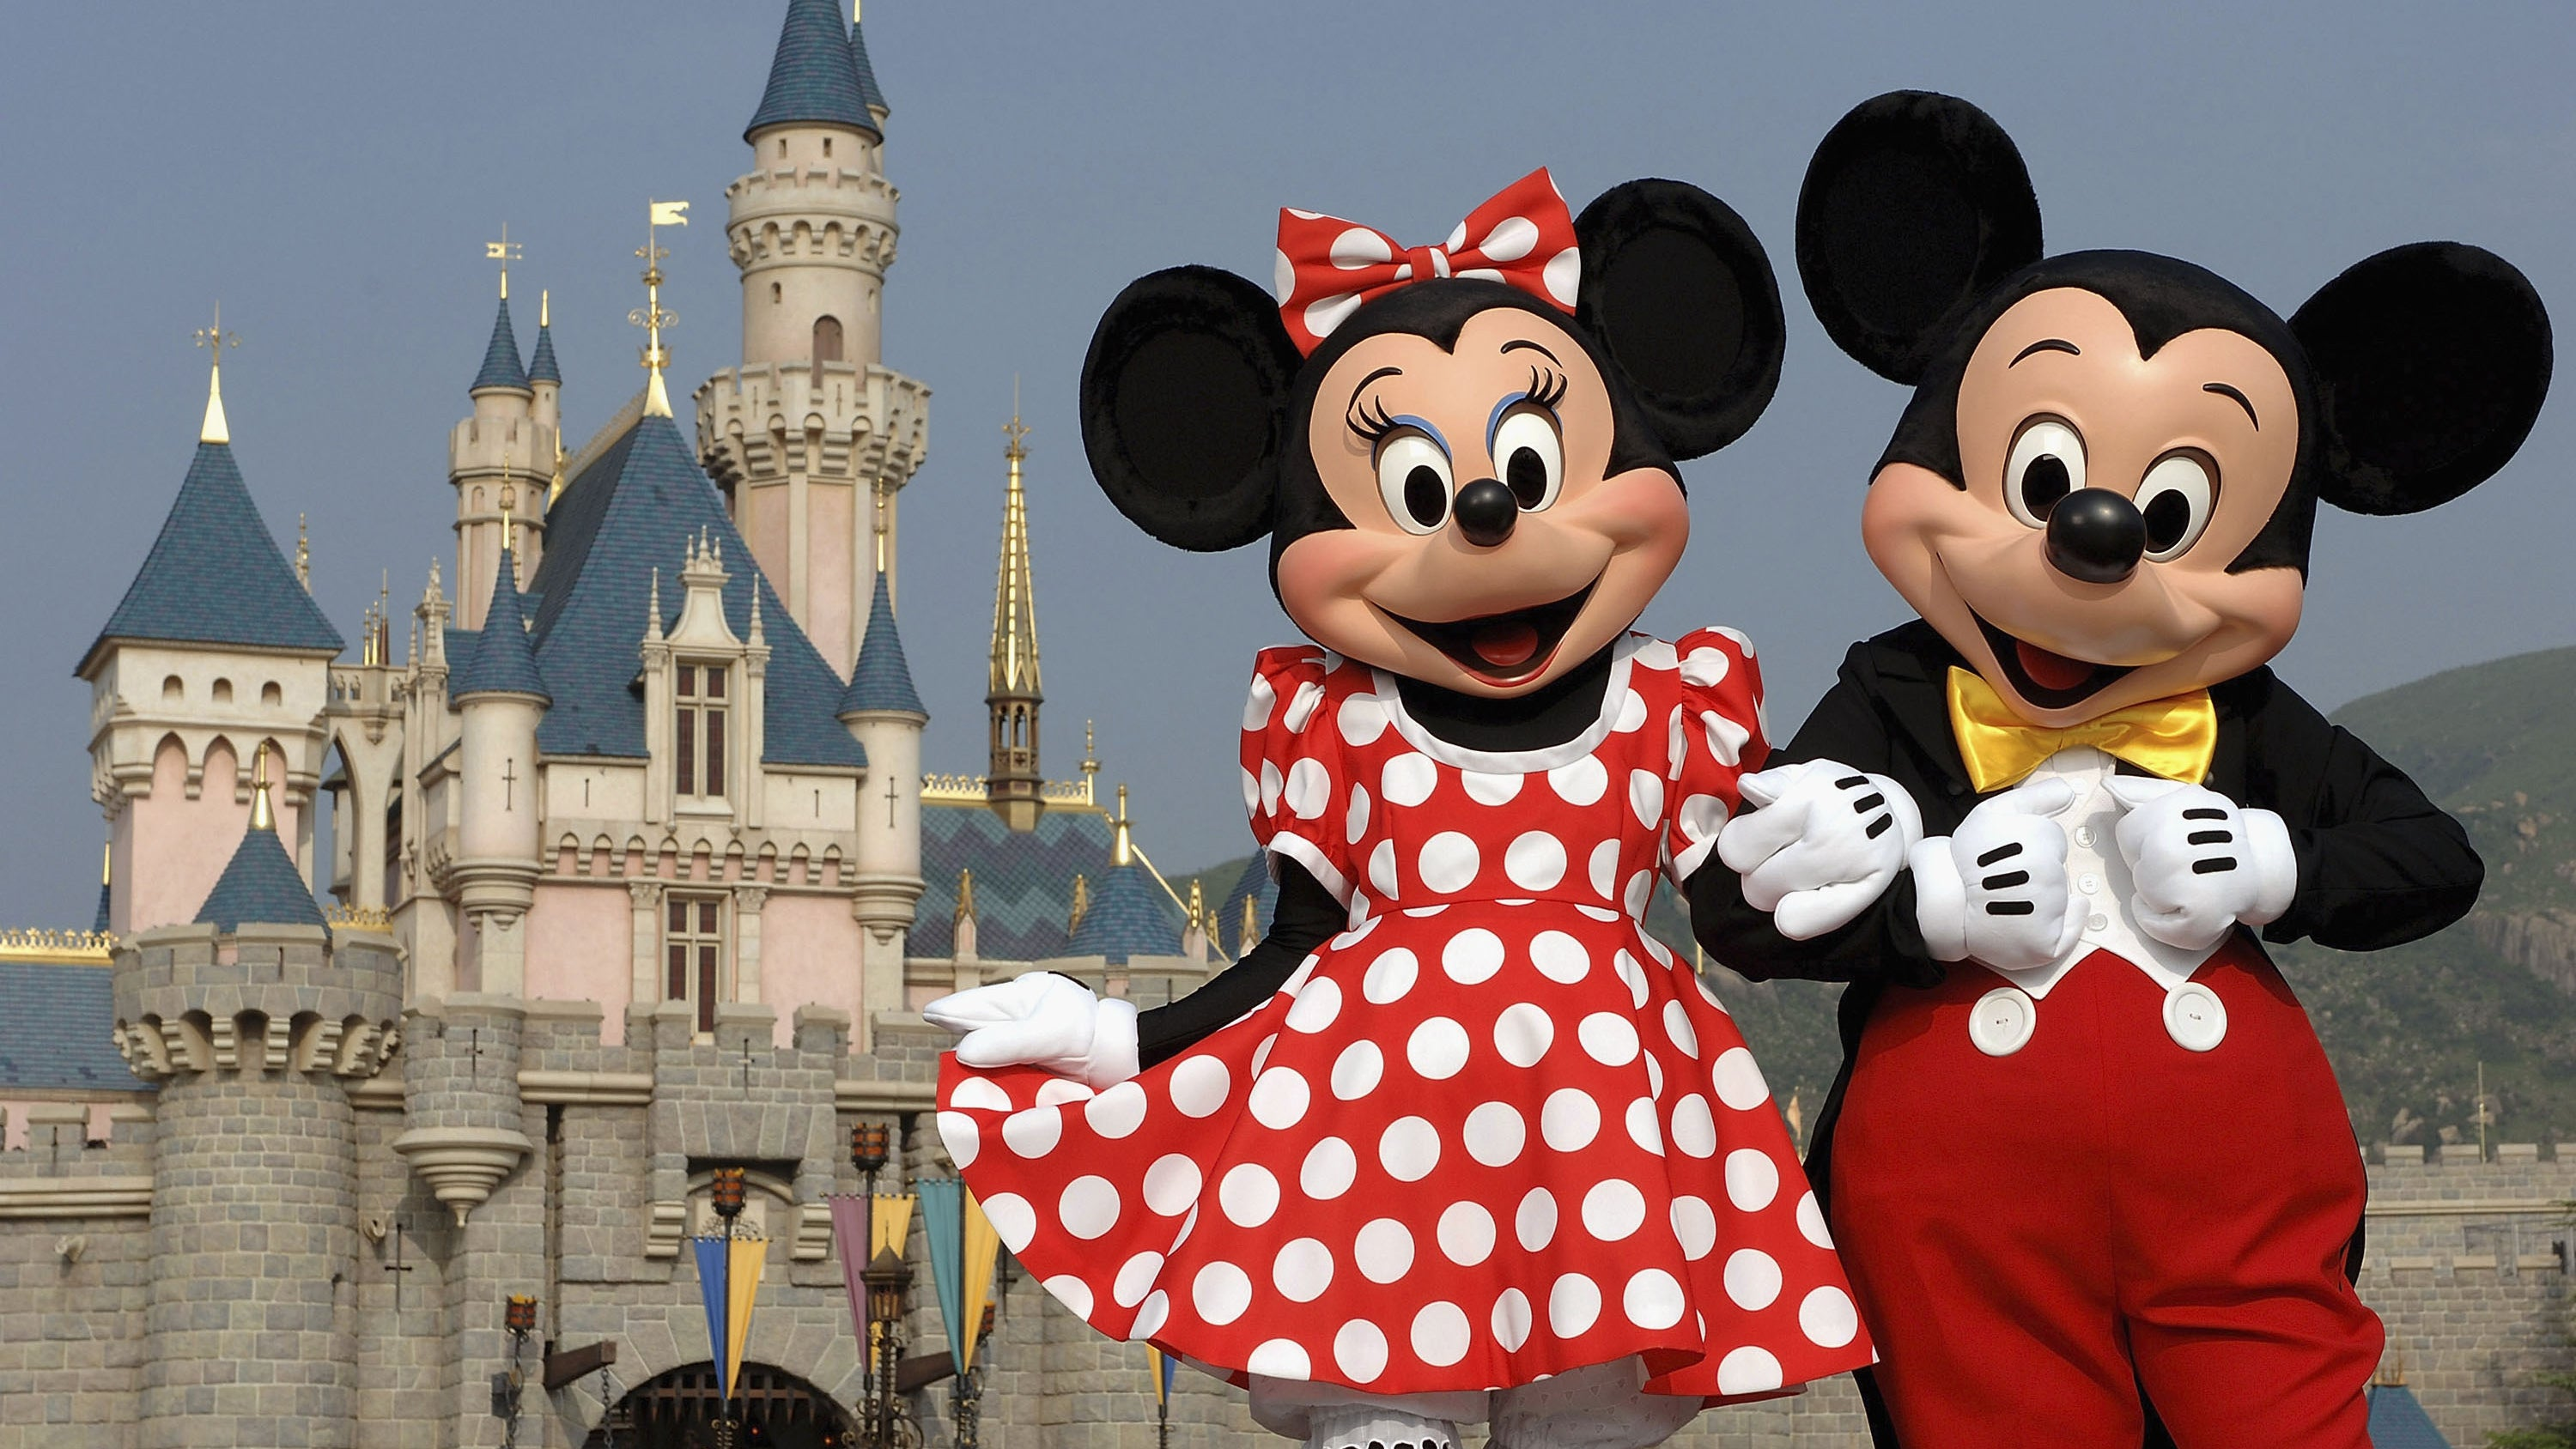 Disney Is Thinking About Buying Twitter: Report